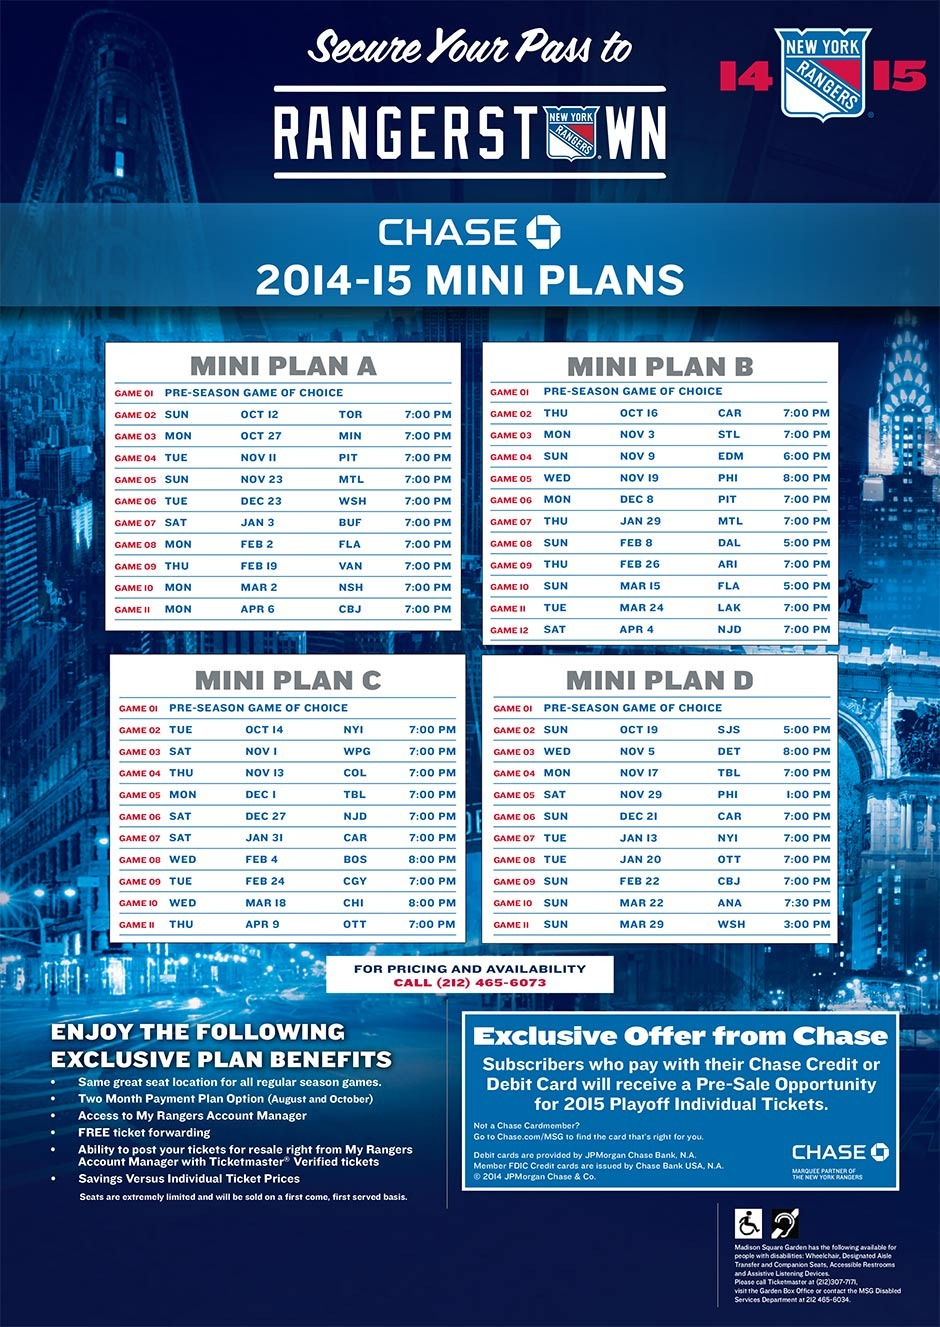 New York Rangers Schedule Wallpaper 2014-15 Mini Plans New York